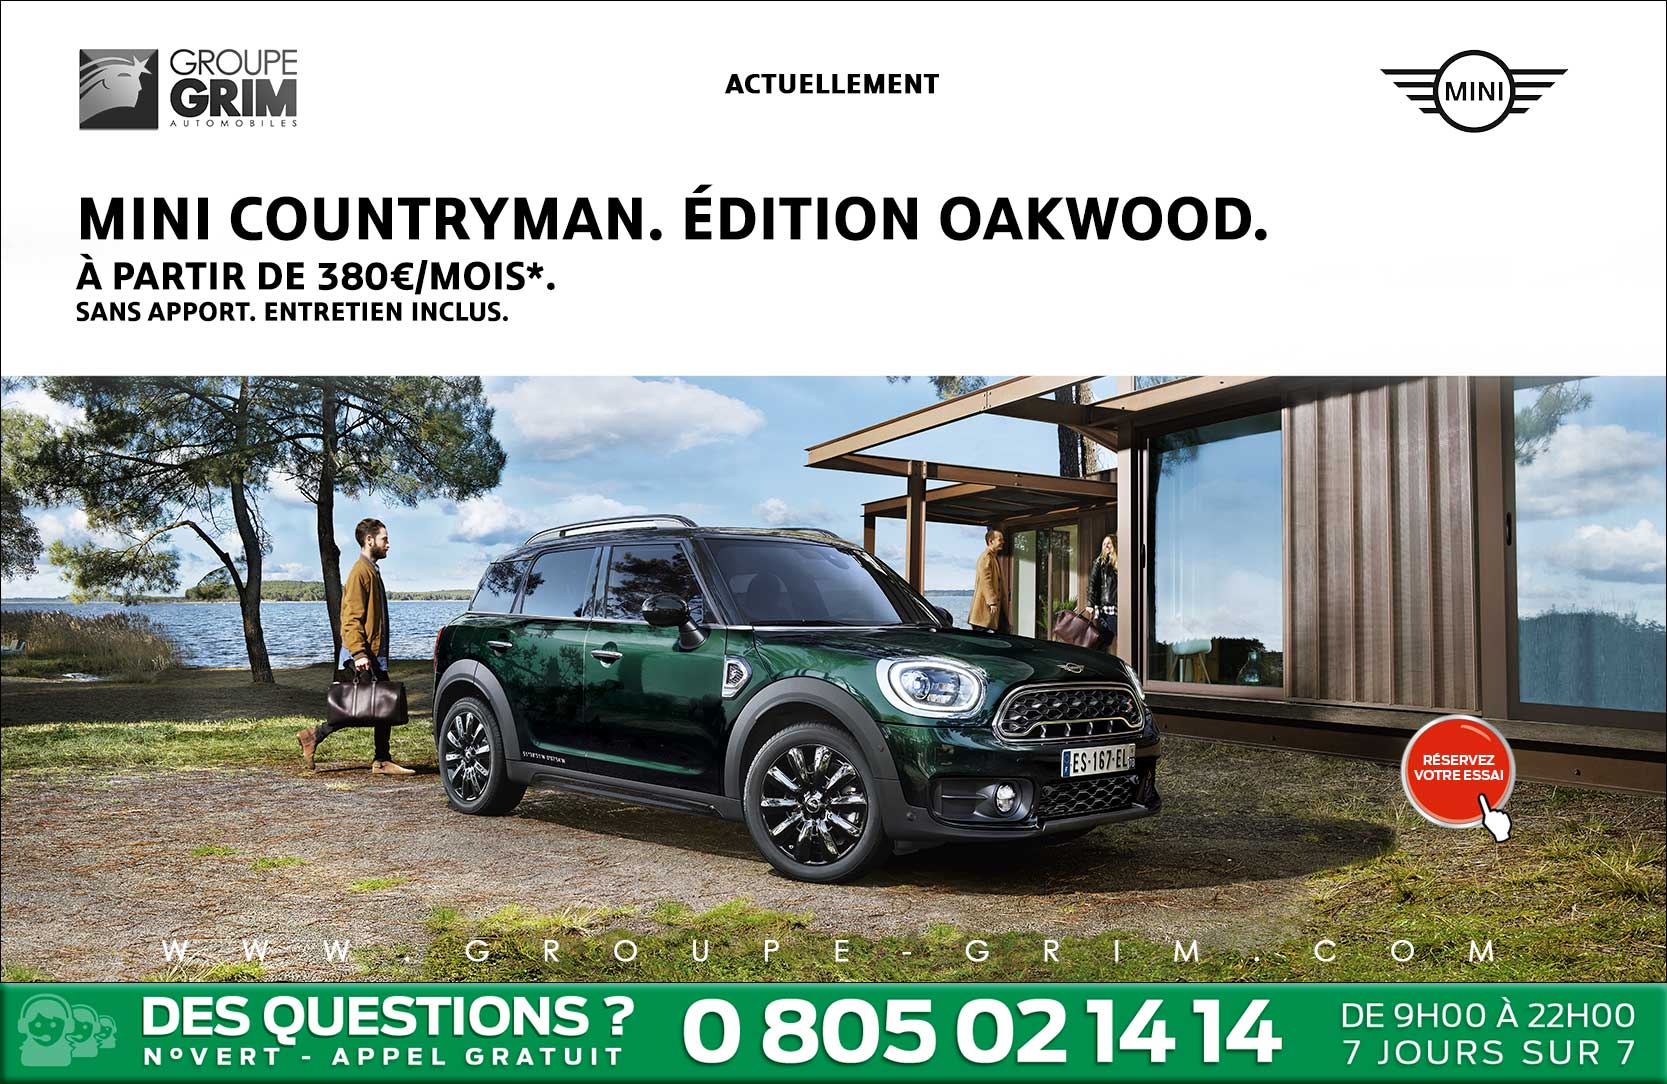 mini countryman dition oakwood mini montpellier mini valence mini mont limar. Black Bedroom Furniture Sets. Home Design Ideas